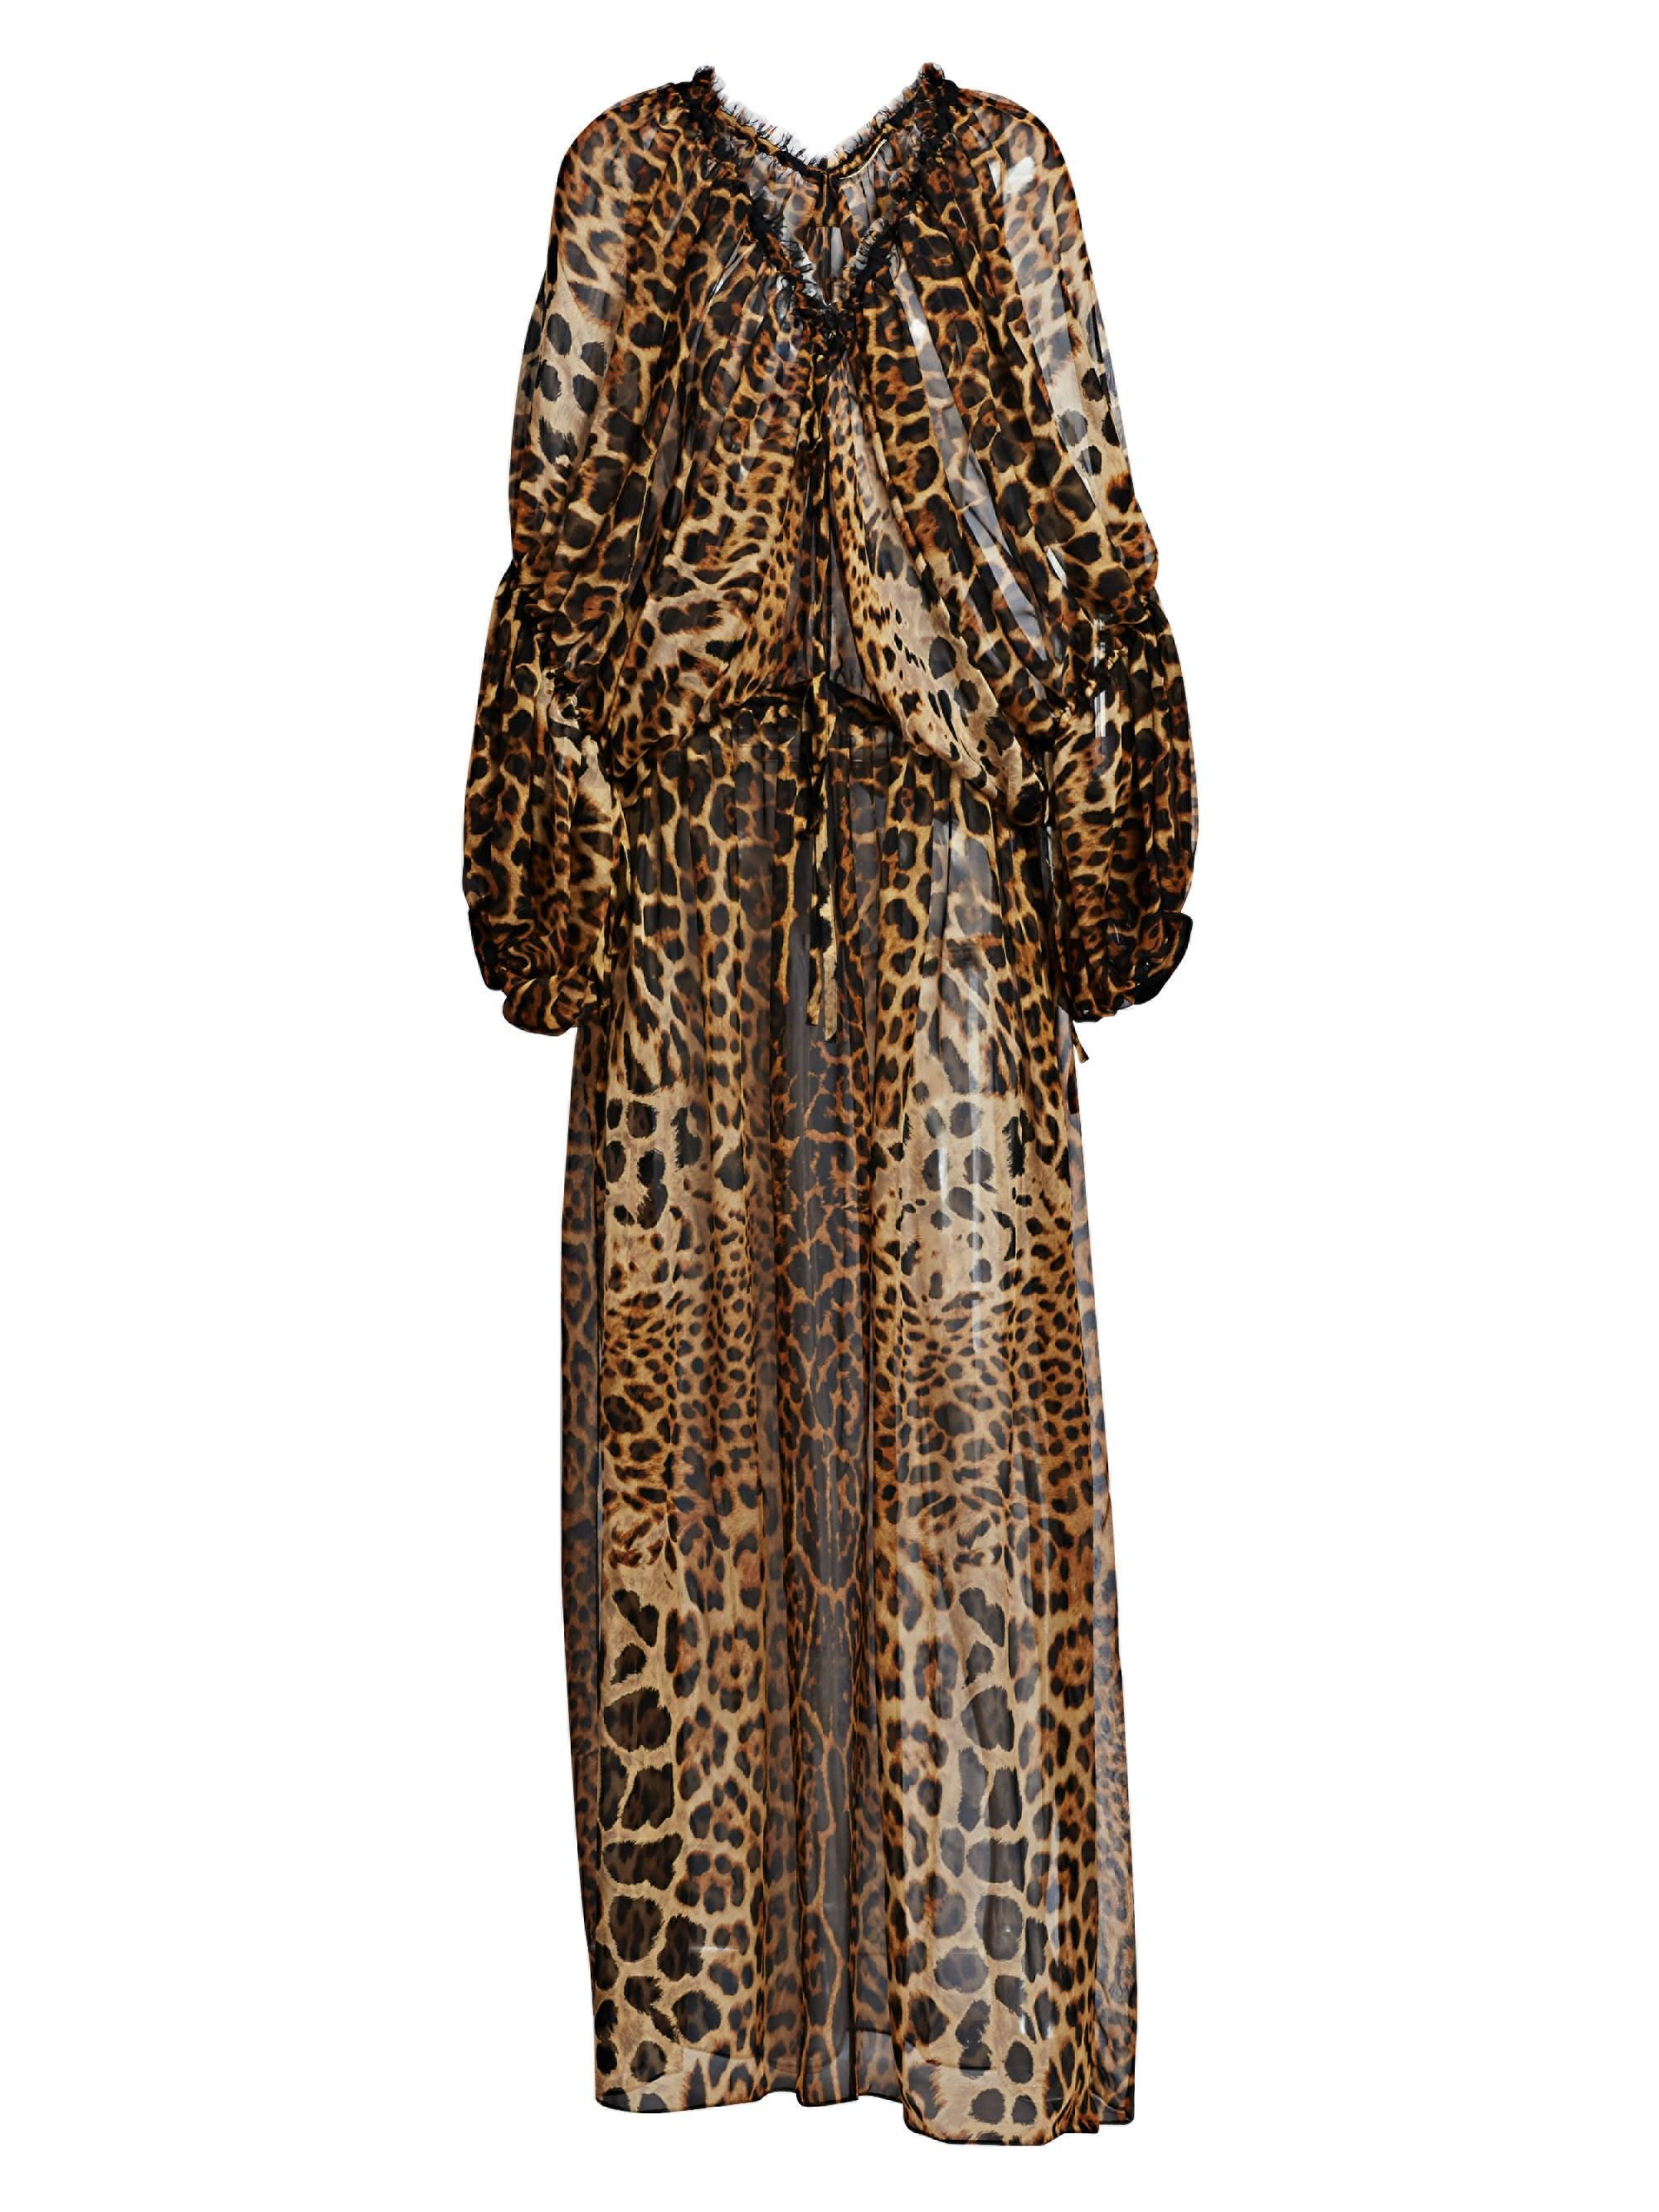 cdaf2020cb5 Lyst - Saint Laurent Women s Mousseline Leopard Print Silk Dress ...